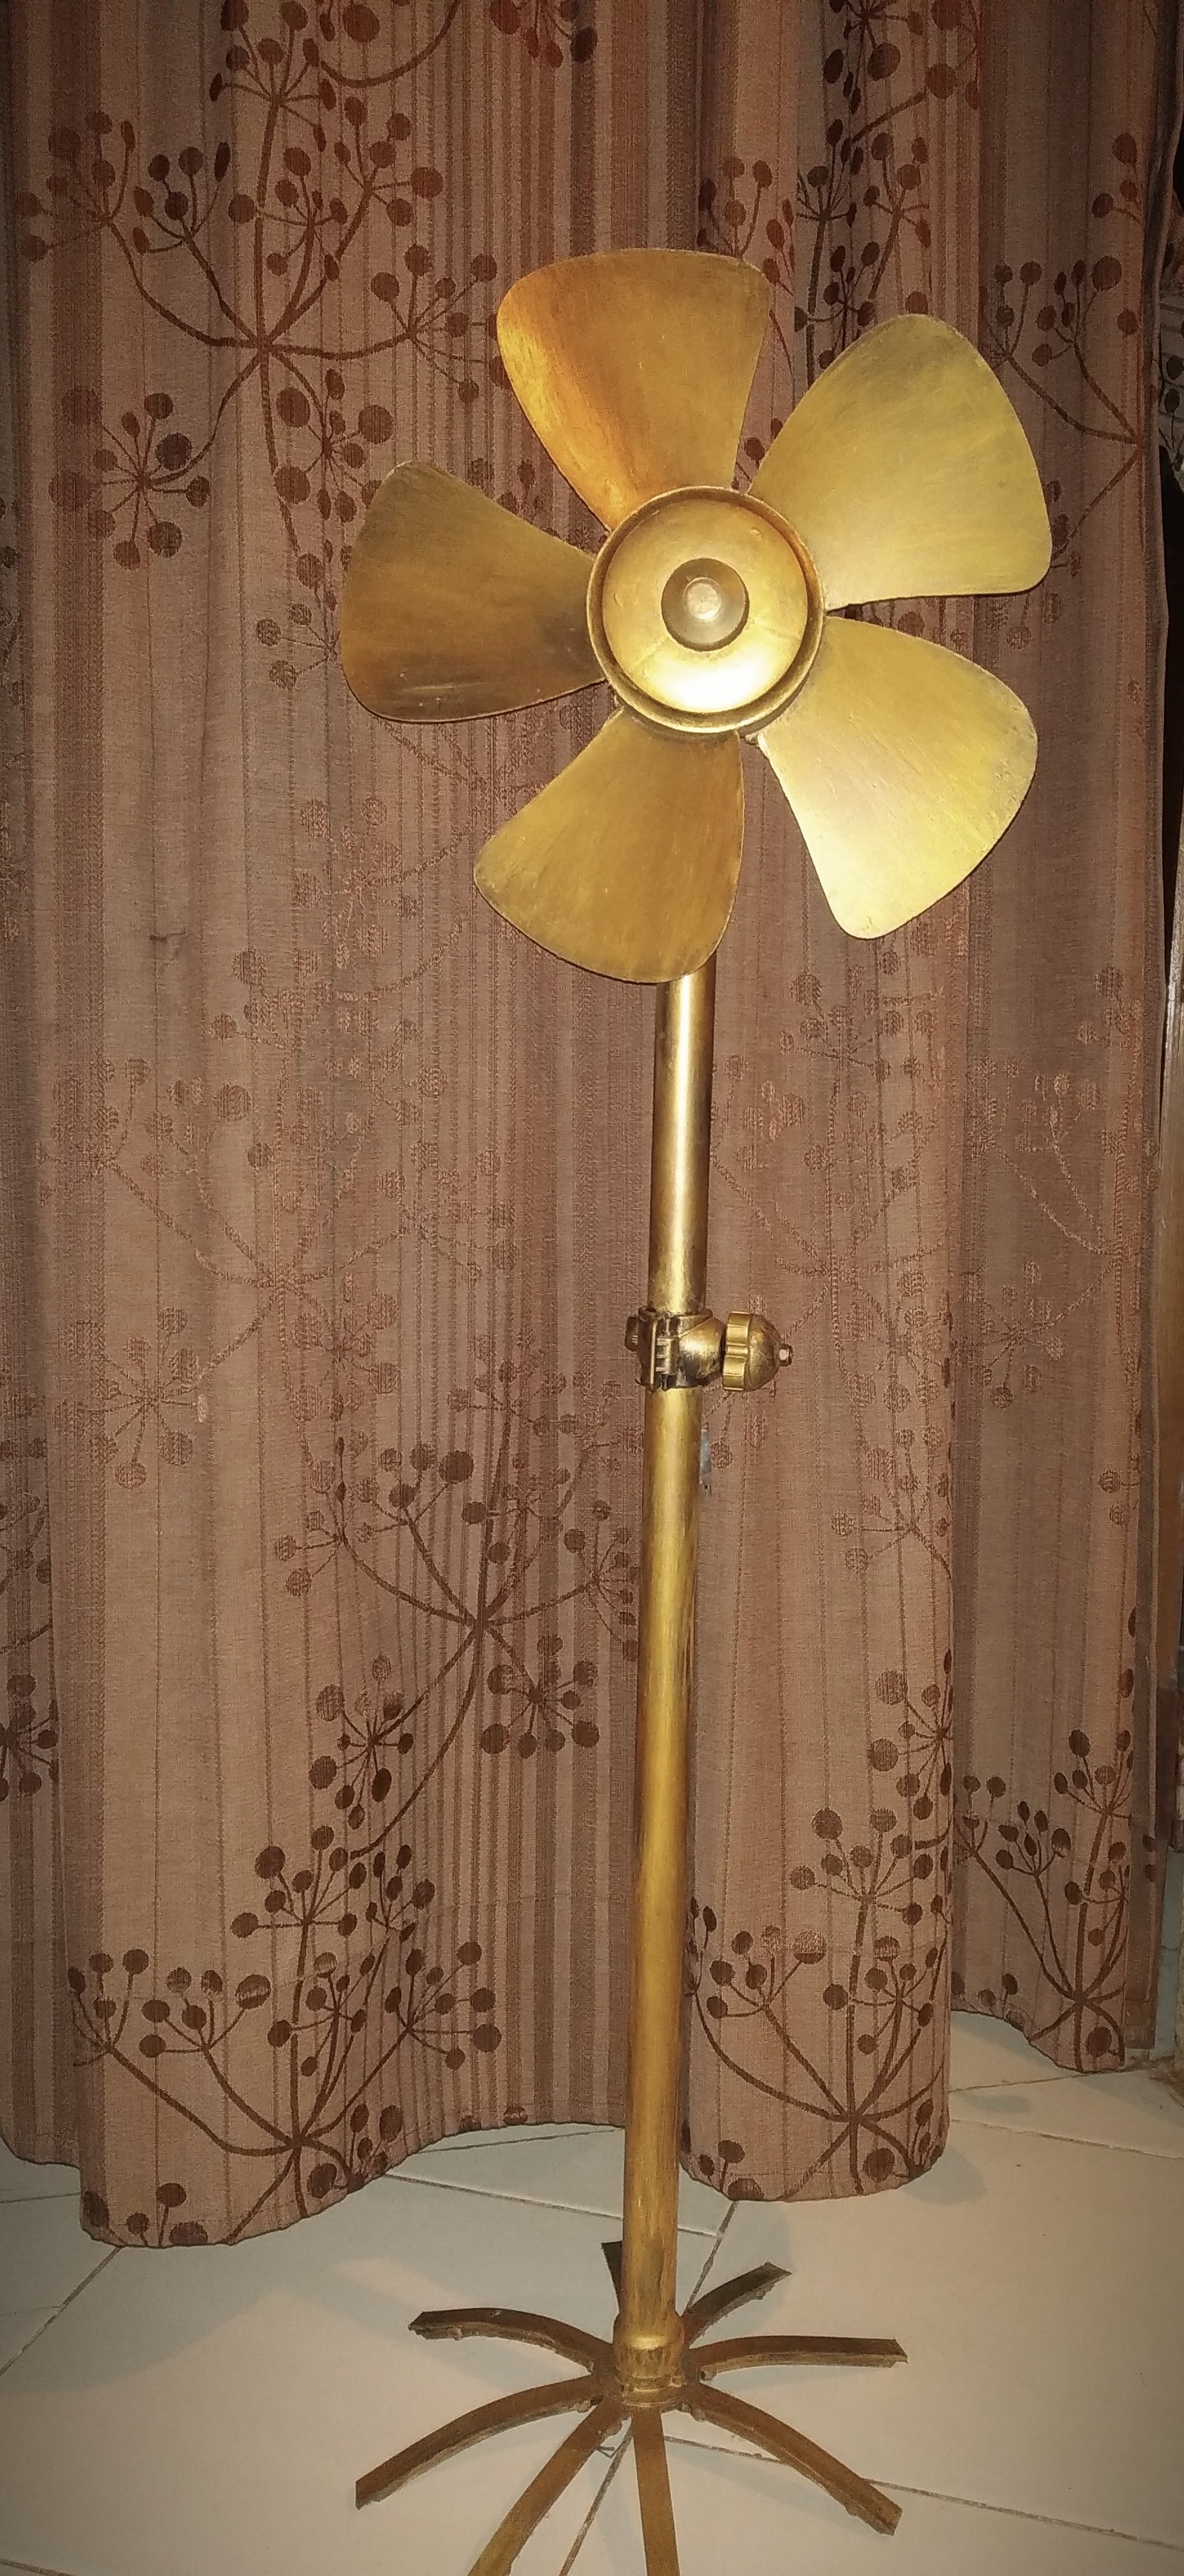 Upcycled Vintage Fan